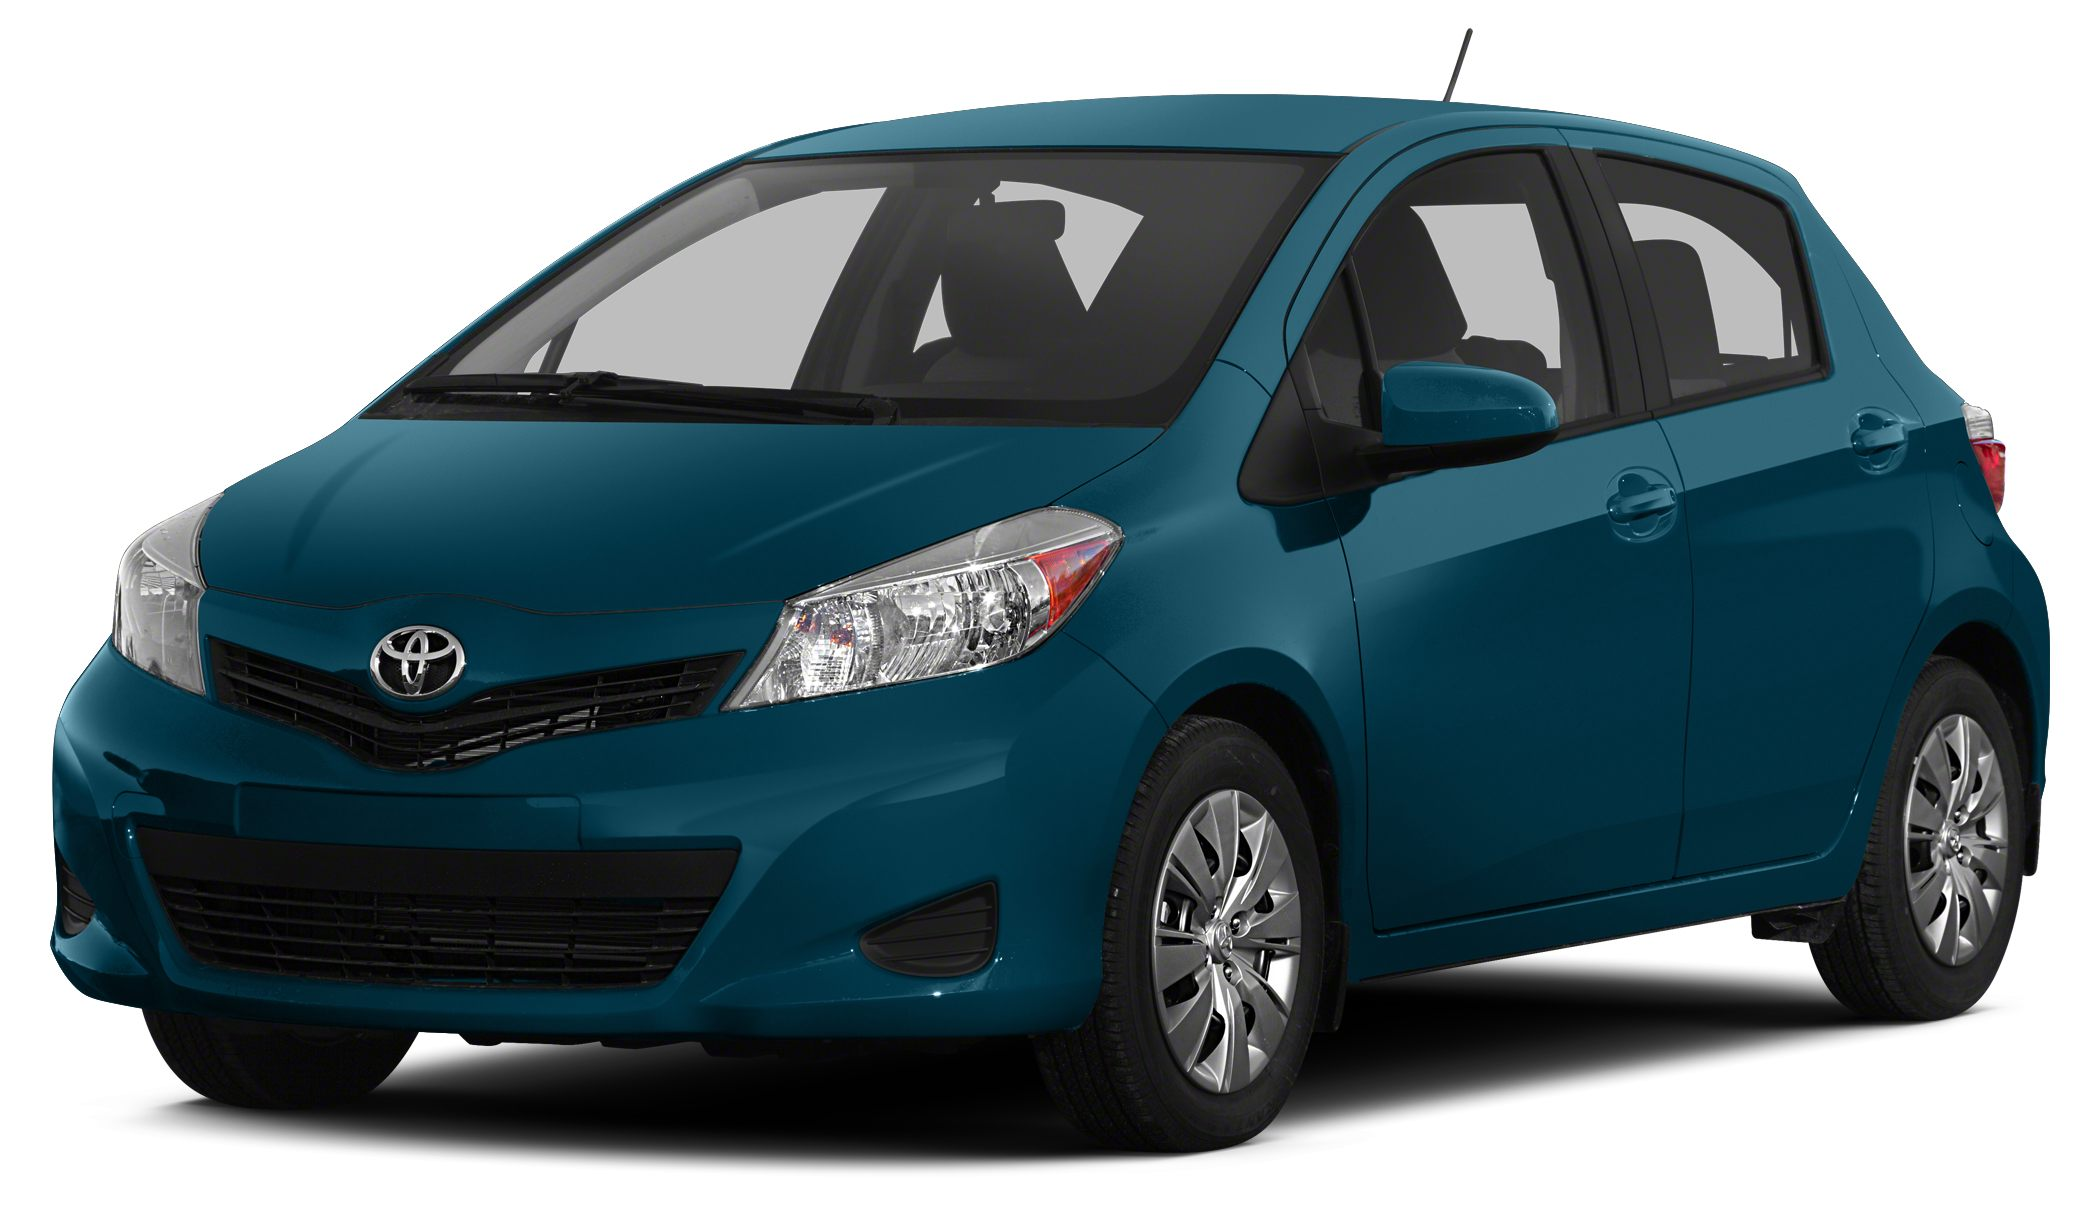 2014 Toyota Yaris LE Toyota Certified FUEL EFFICIENT 36 MPG Hwy30 MPG City LE trim LAGOON BLUE